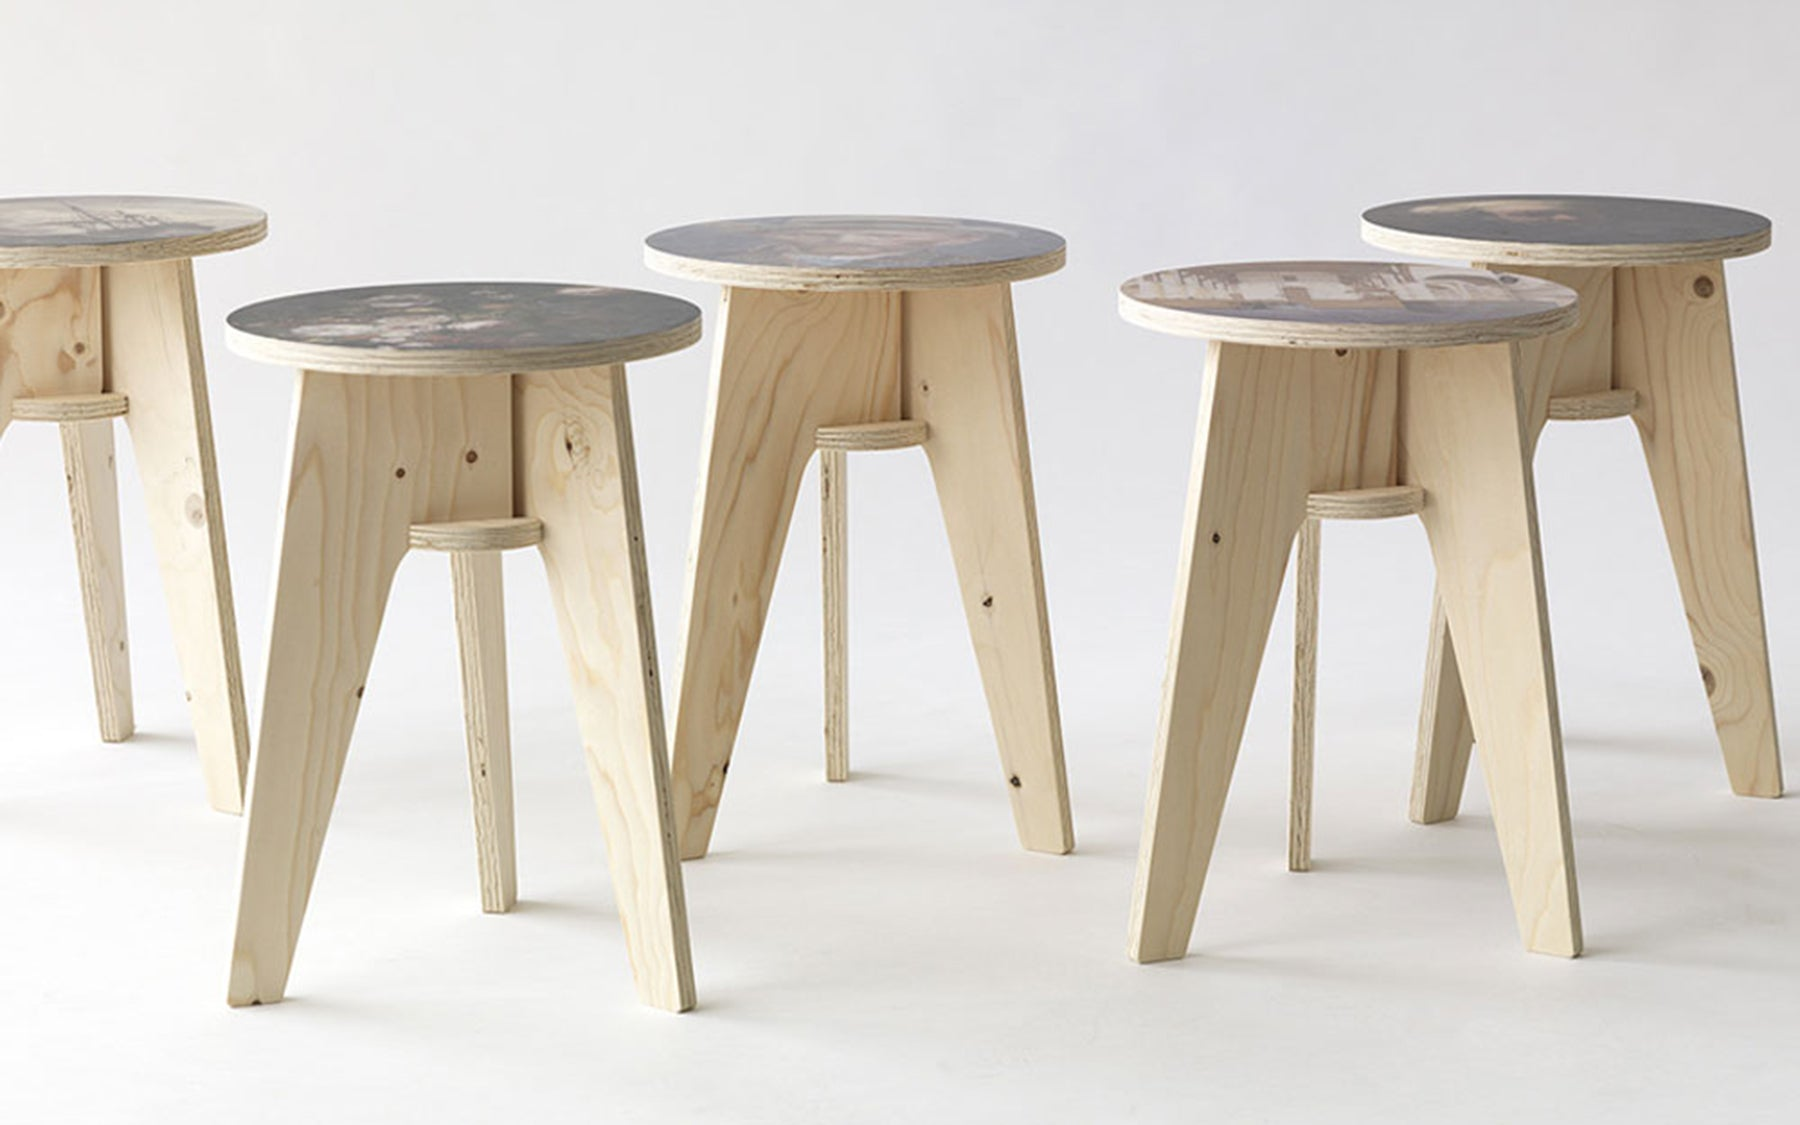 Peachy Printed Crisis Stool Caraccident5 Cool Chair Designs And Ideas Caraccident5Info